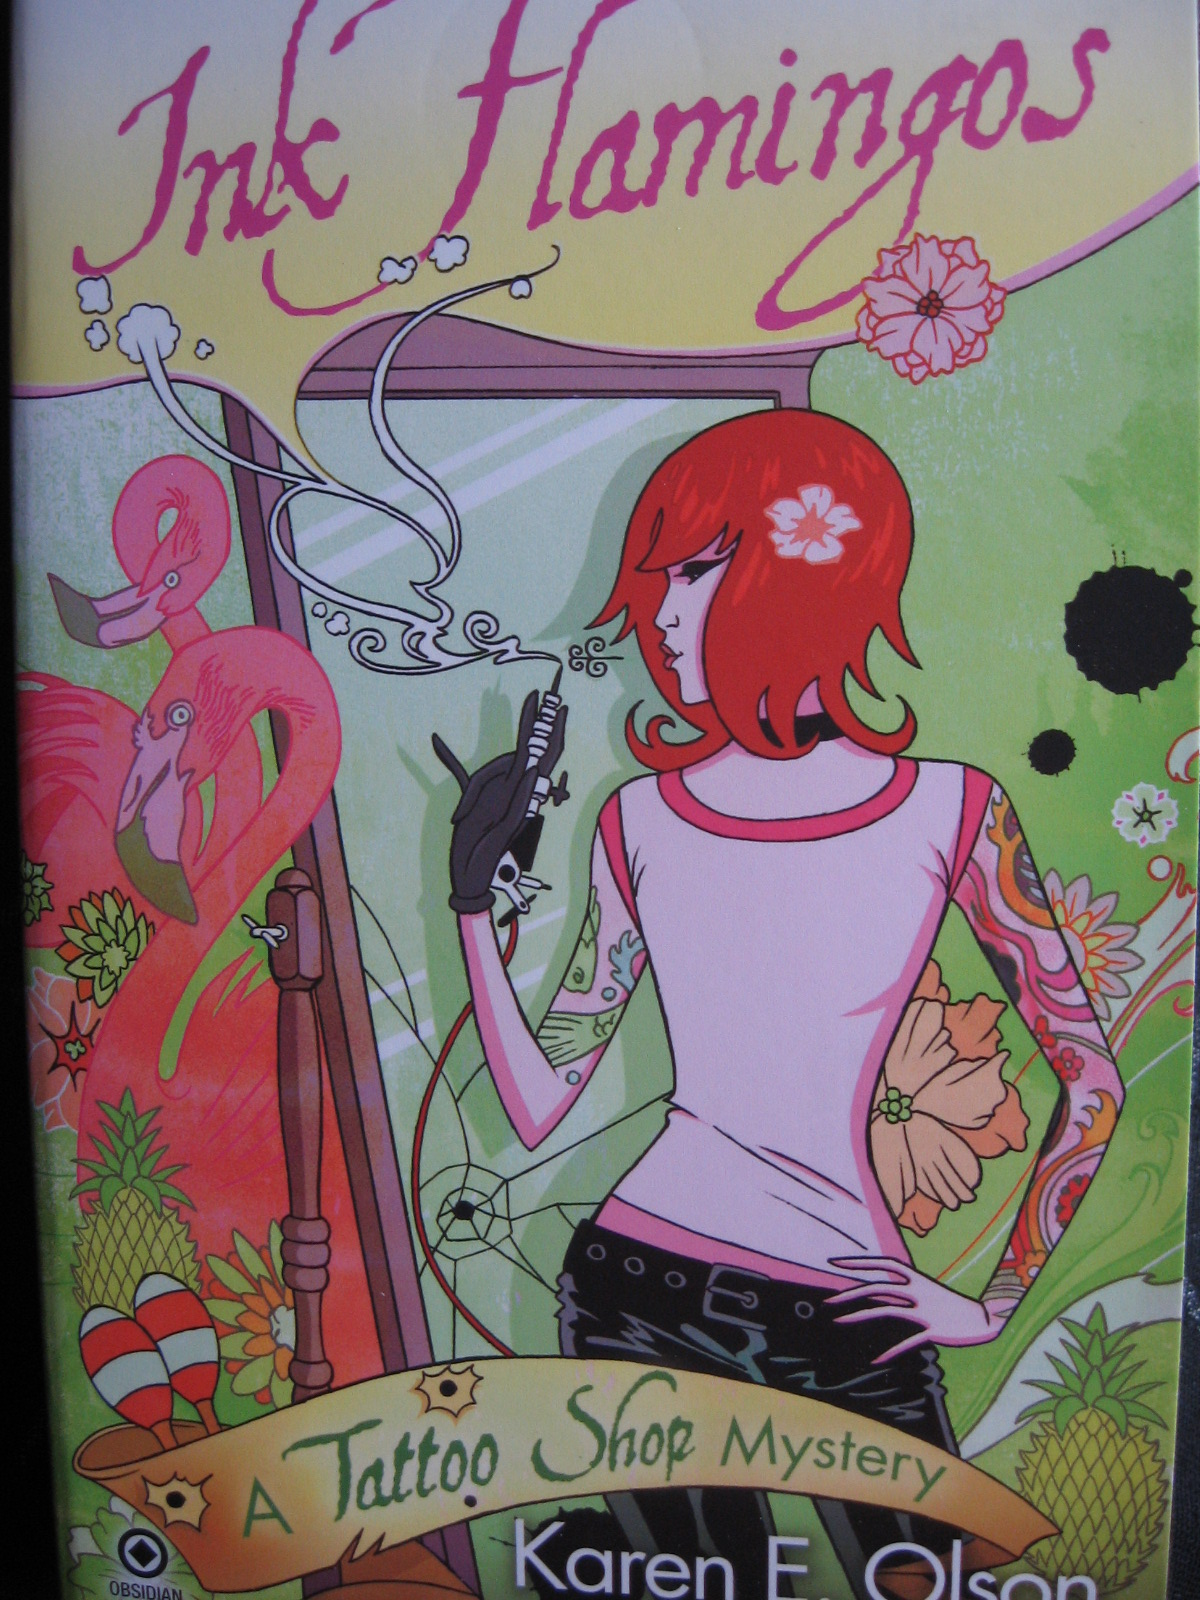 book review: ink flamingos  a tattoo shop mystery, part 4